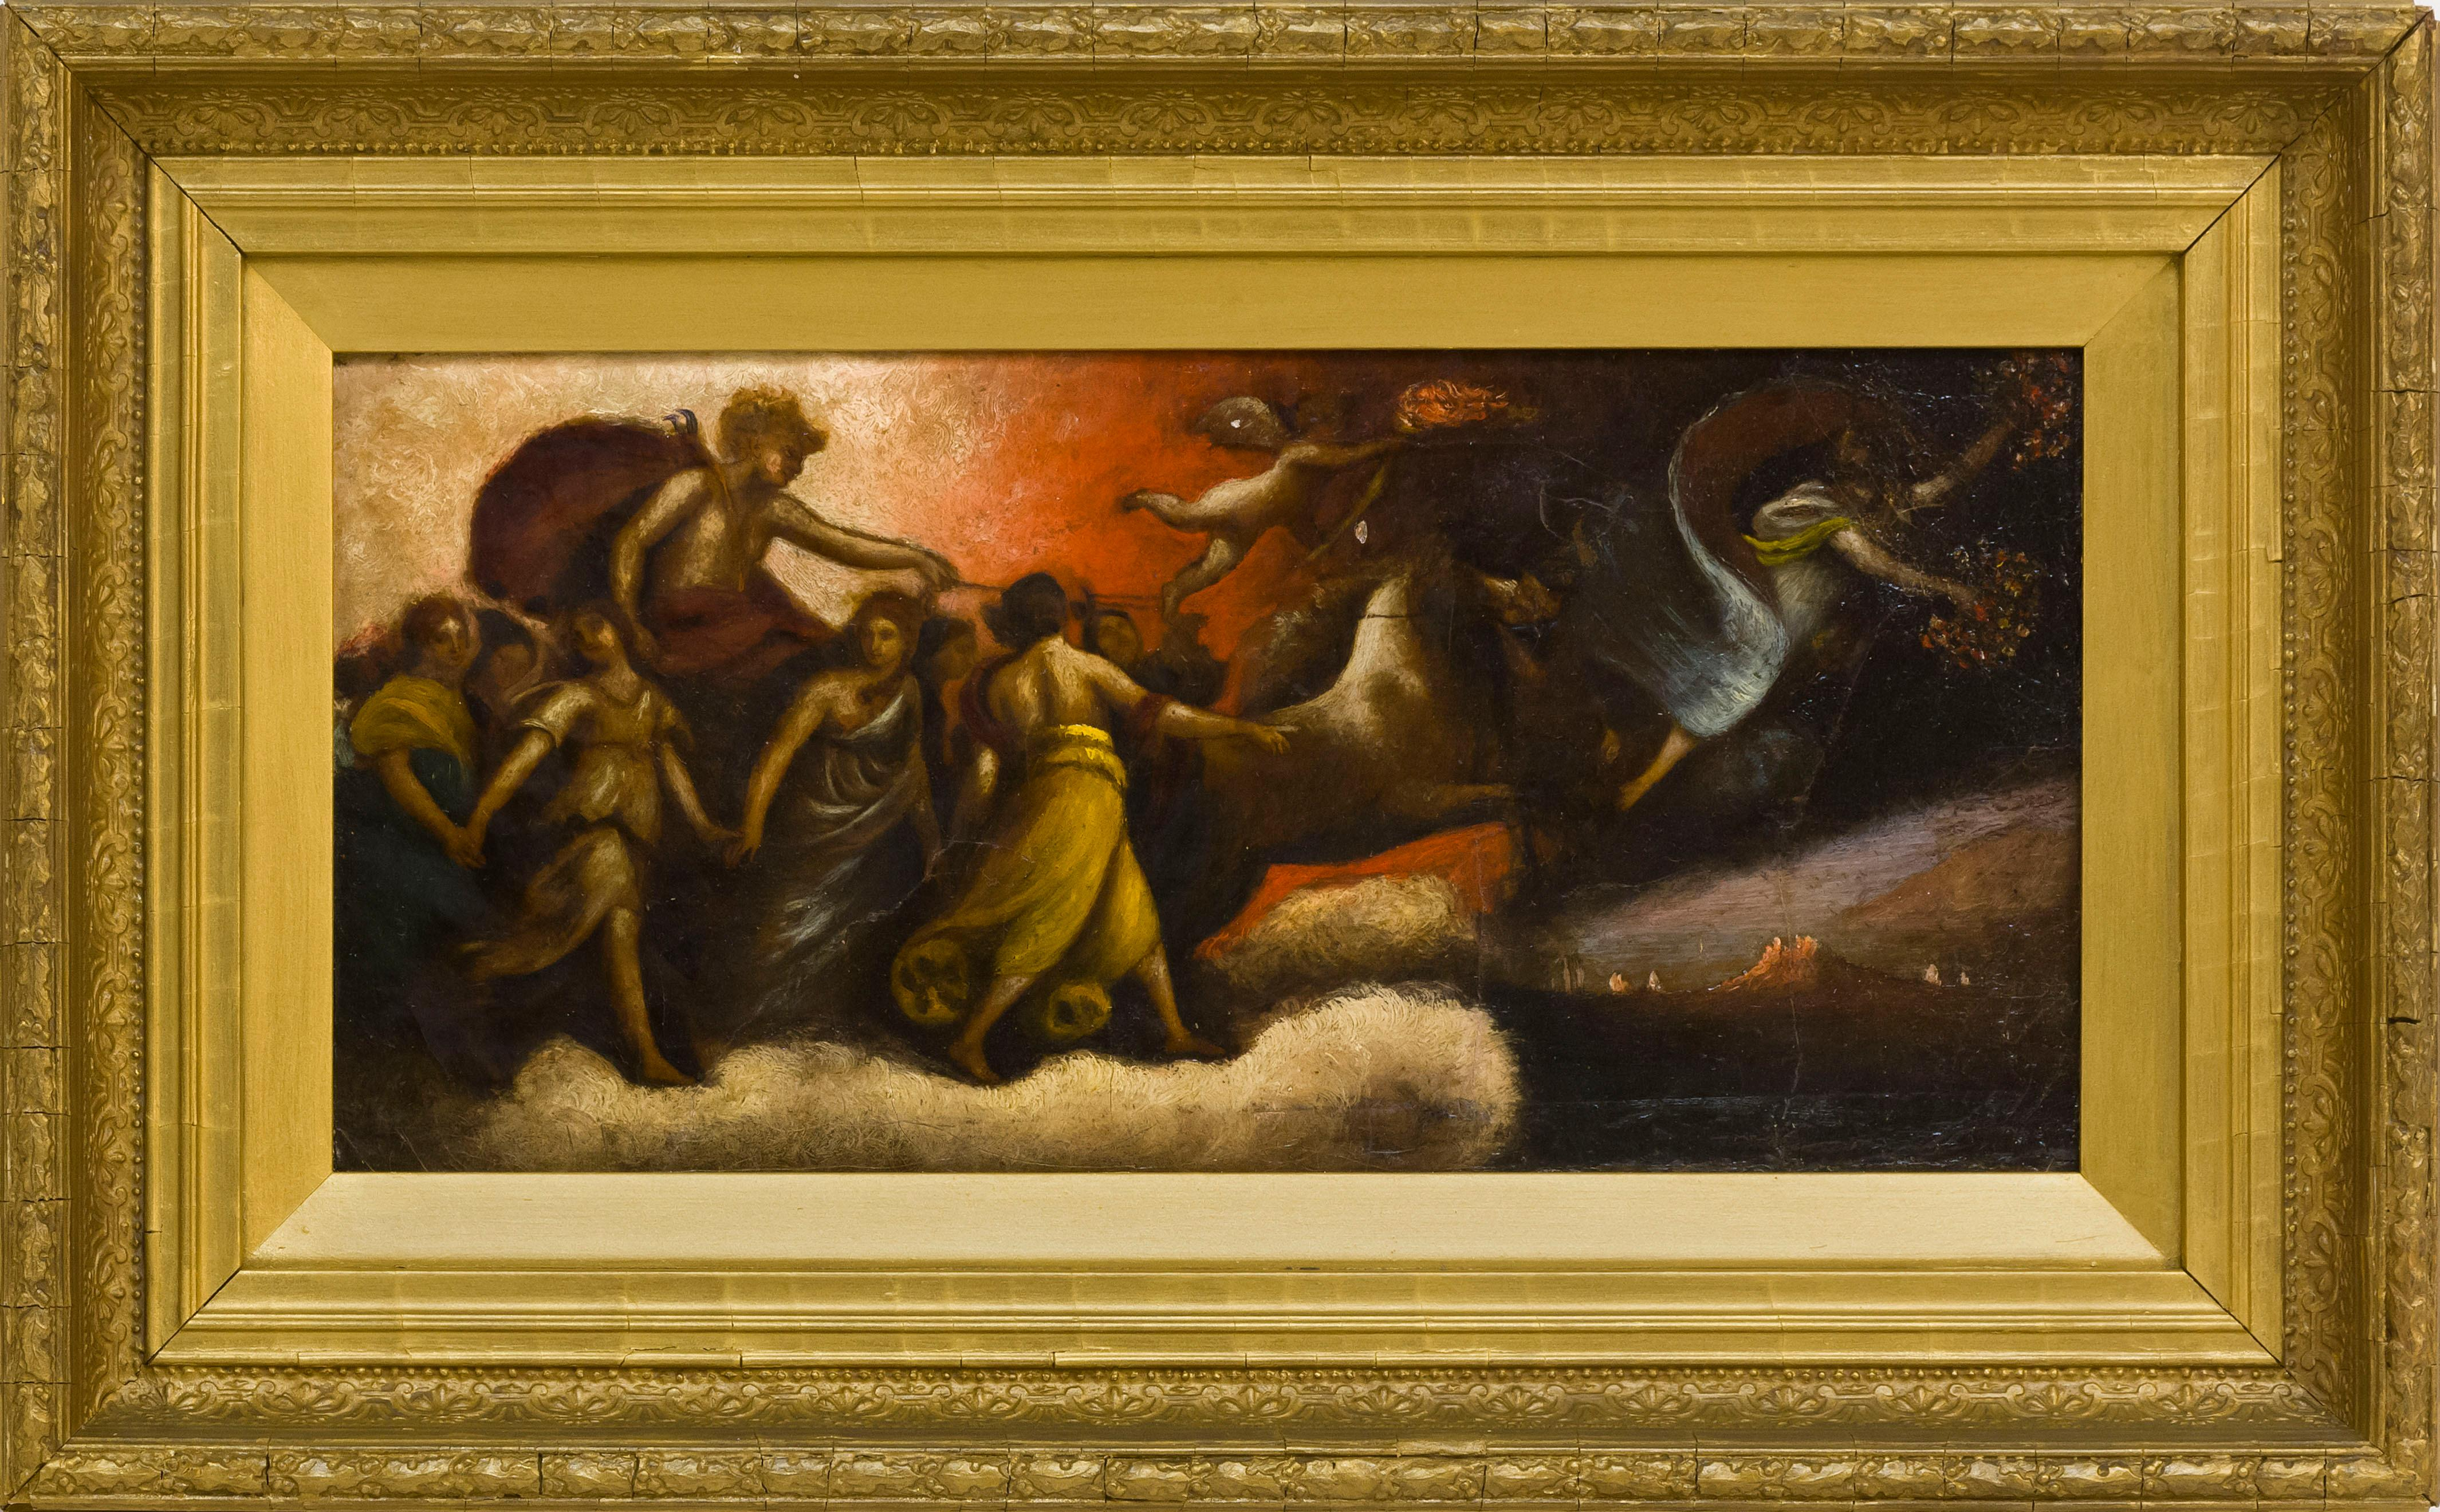 """AFTER GUIDO RENI, 20th Century, """"Aurora"""",, Oil on canvas mounted on masonite, 7.25"""" x 15"""". Framed 12.25"""" x 20""""."""